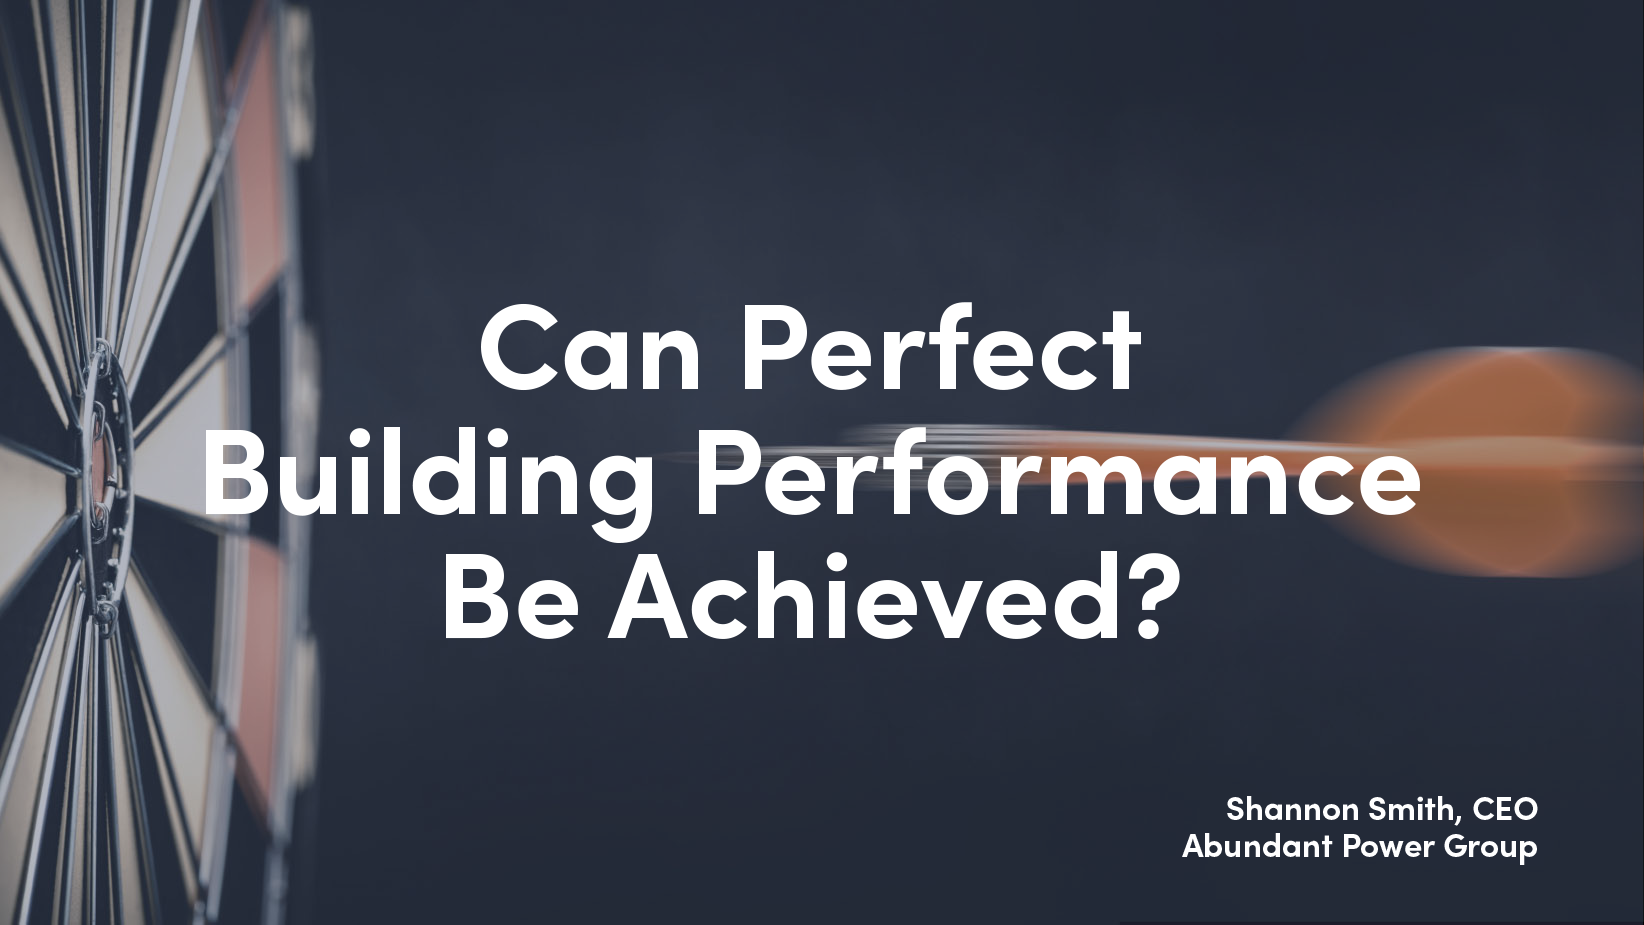 Can Perfect Building Performance Be Achieved?